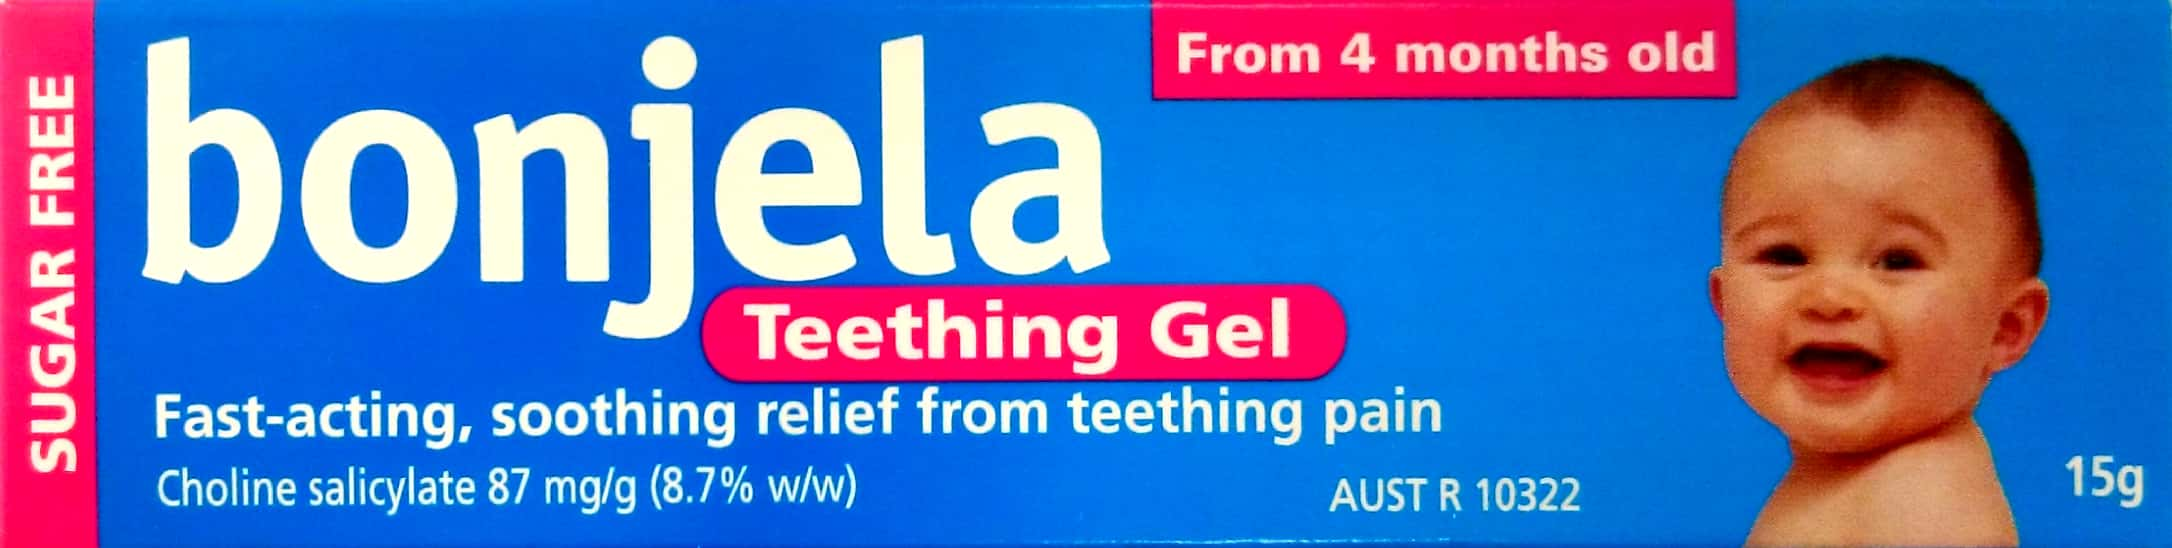 Bonjela Teething Gel 15 G Daftar Harga Terbaru Terlengkap Indonesia For And Mouth Ulcers Gram Medication 93262170 Front